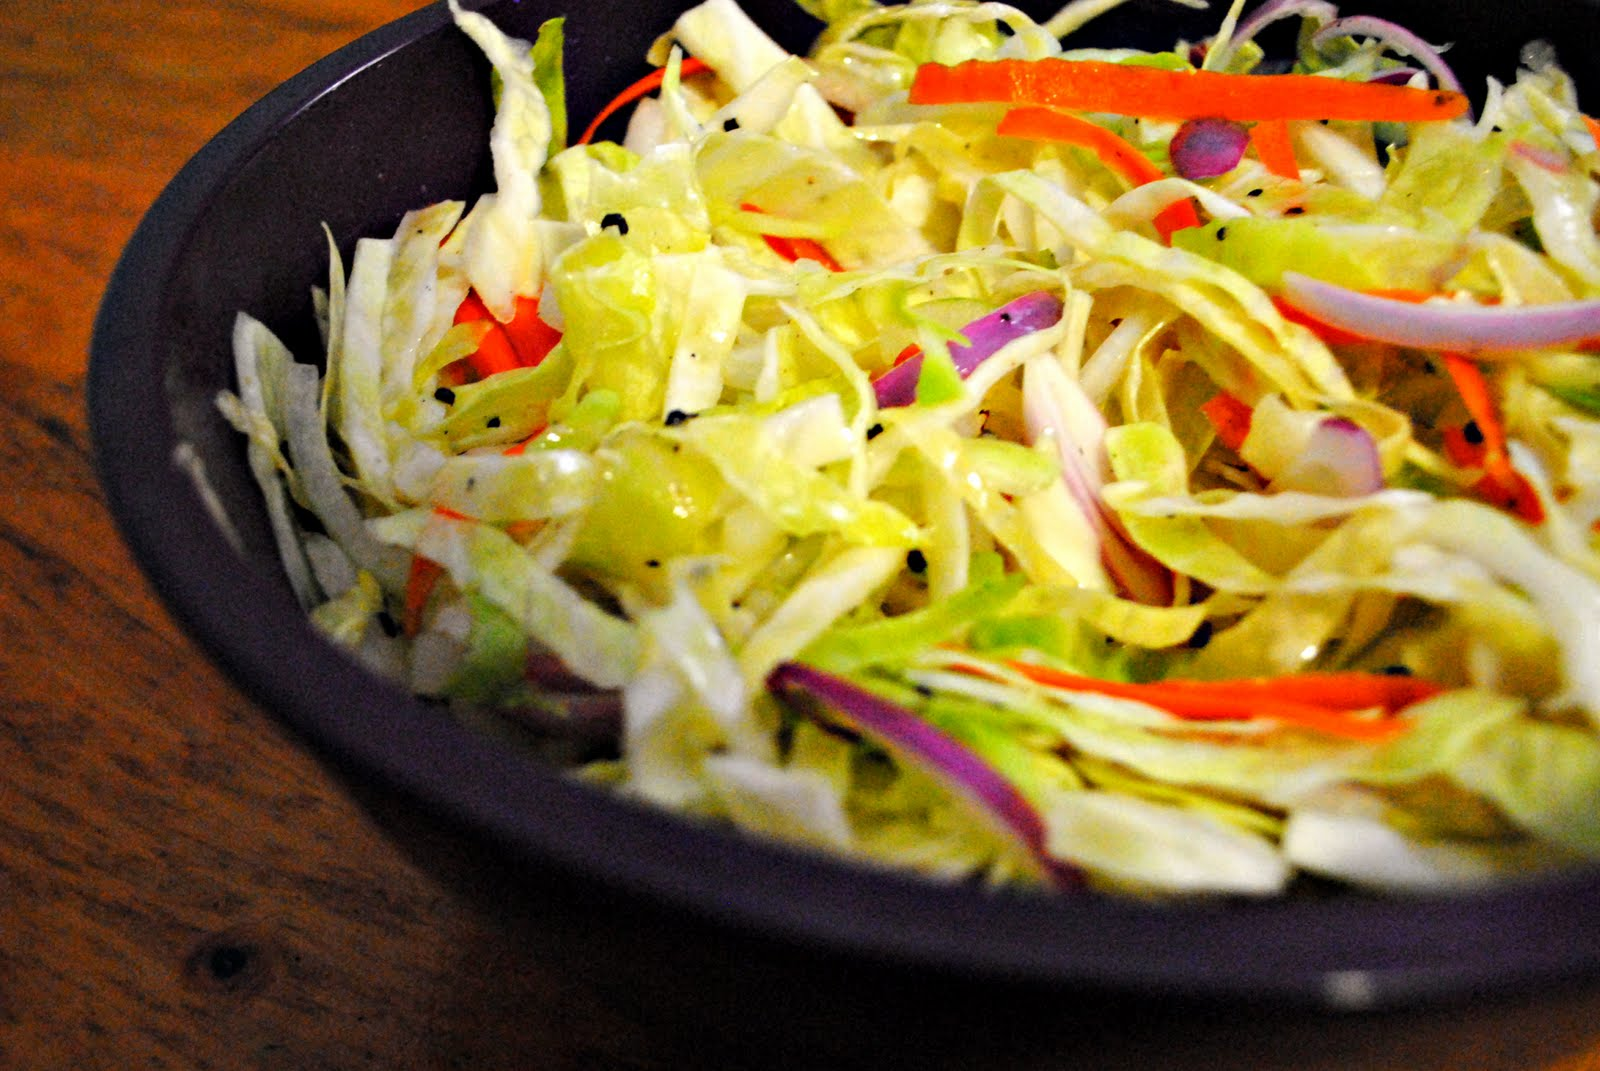 In the Kitchen with Little Buddy: Tangy Asian-Style Slaw